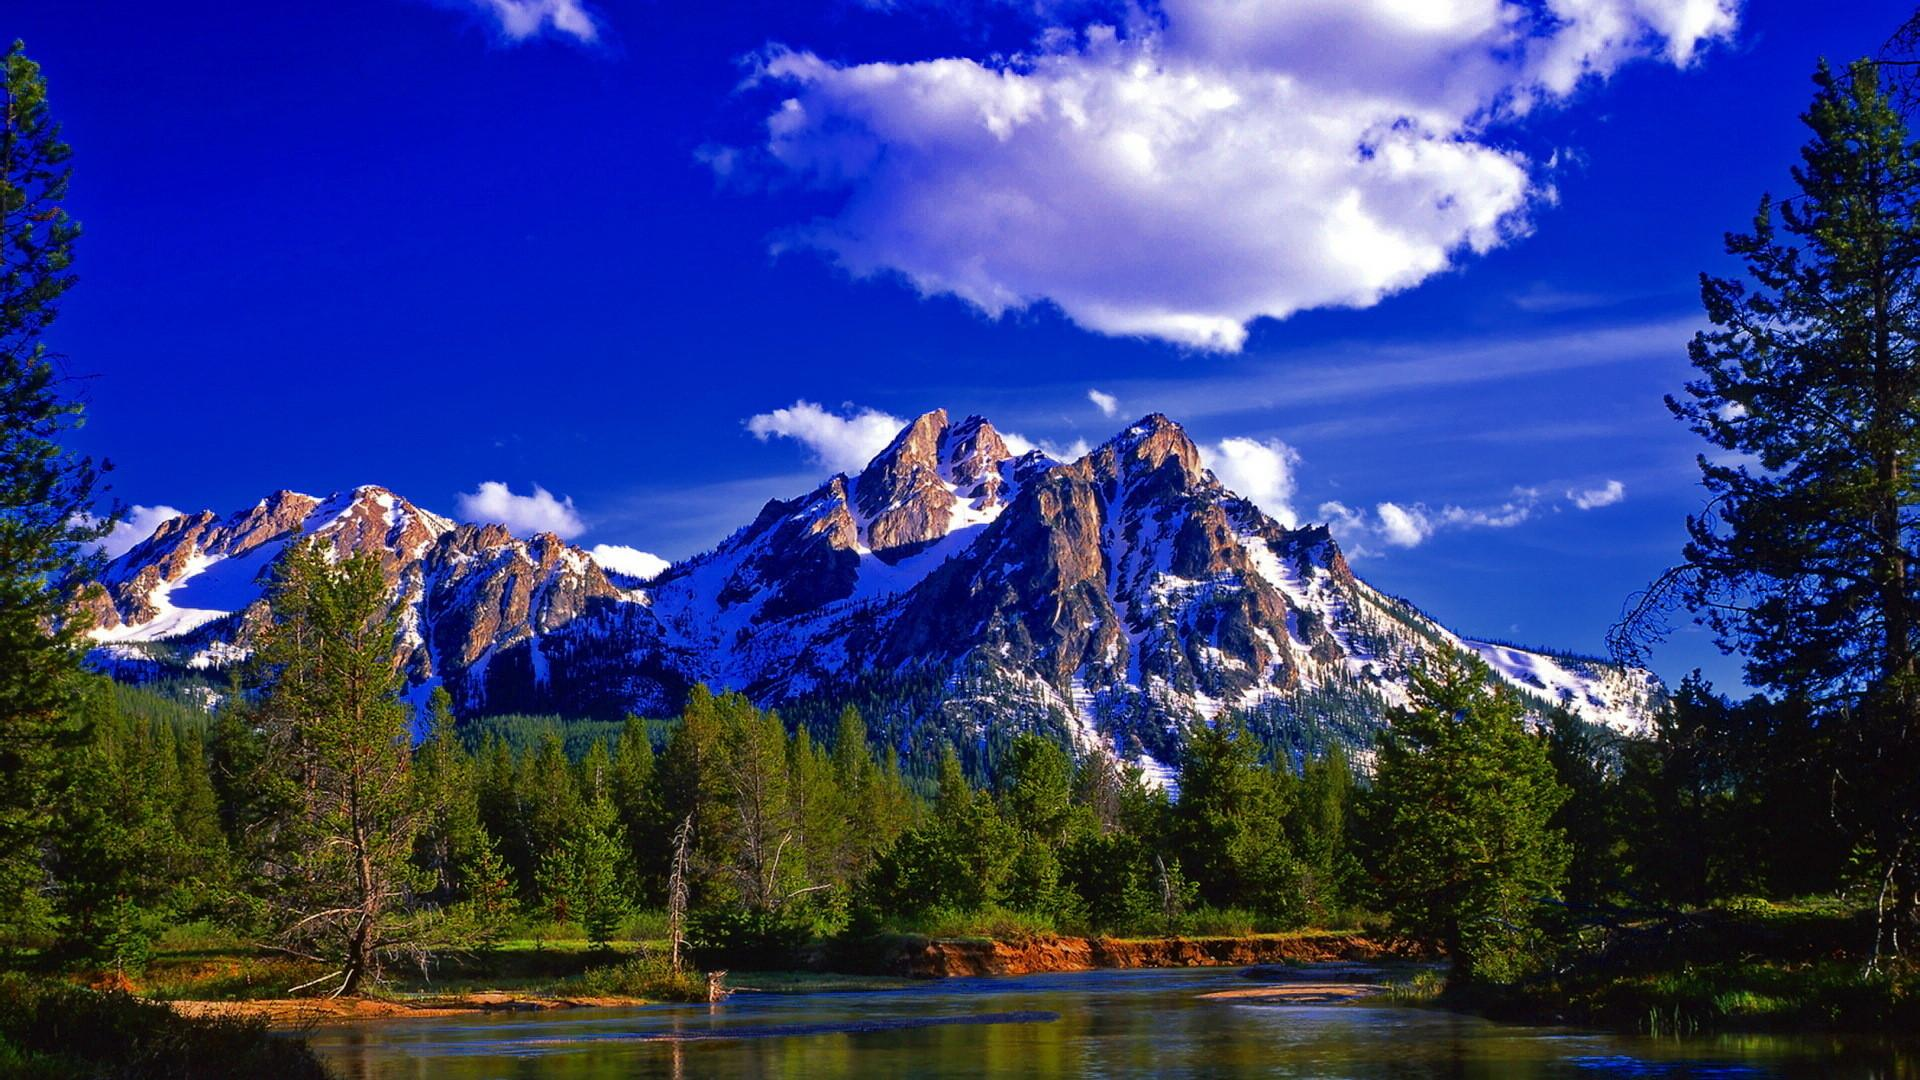 64K Resolution Wallpapers - Top Free ...